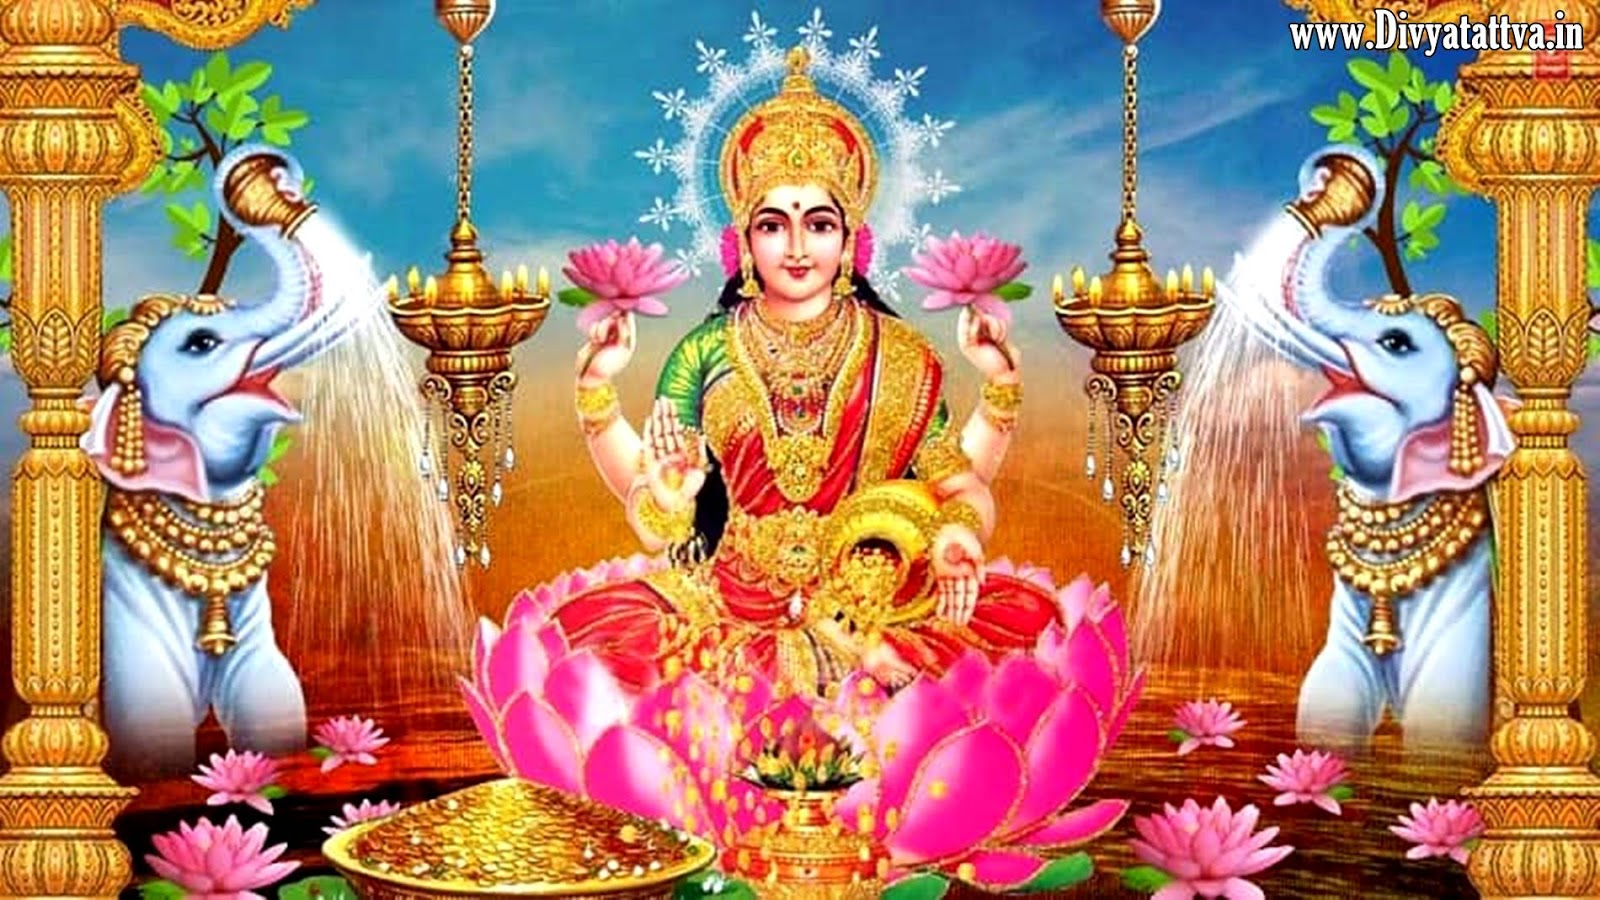 Laxmi Devi Wallpaper Laxmi Mantra 779461 Hd Wallpaper Backgrounds Download